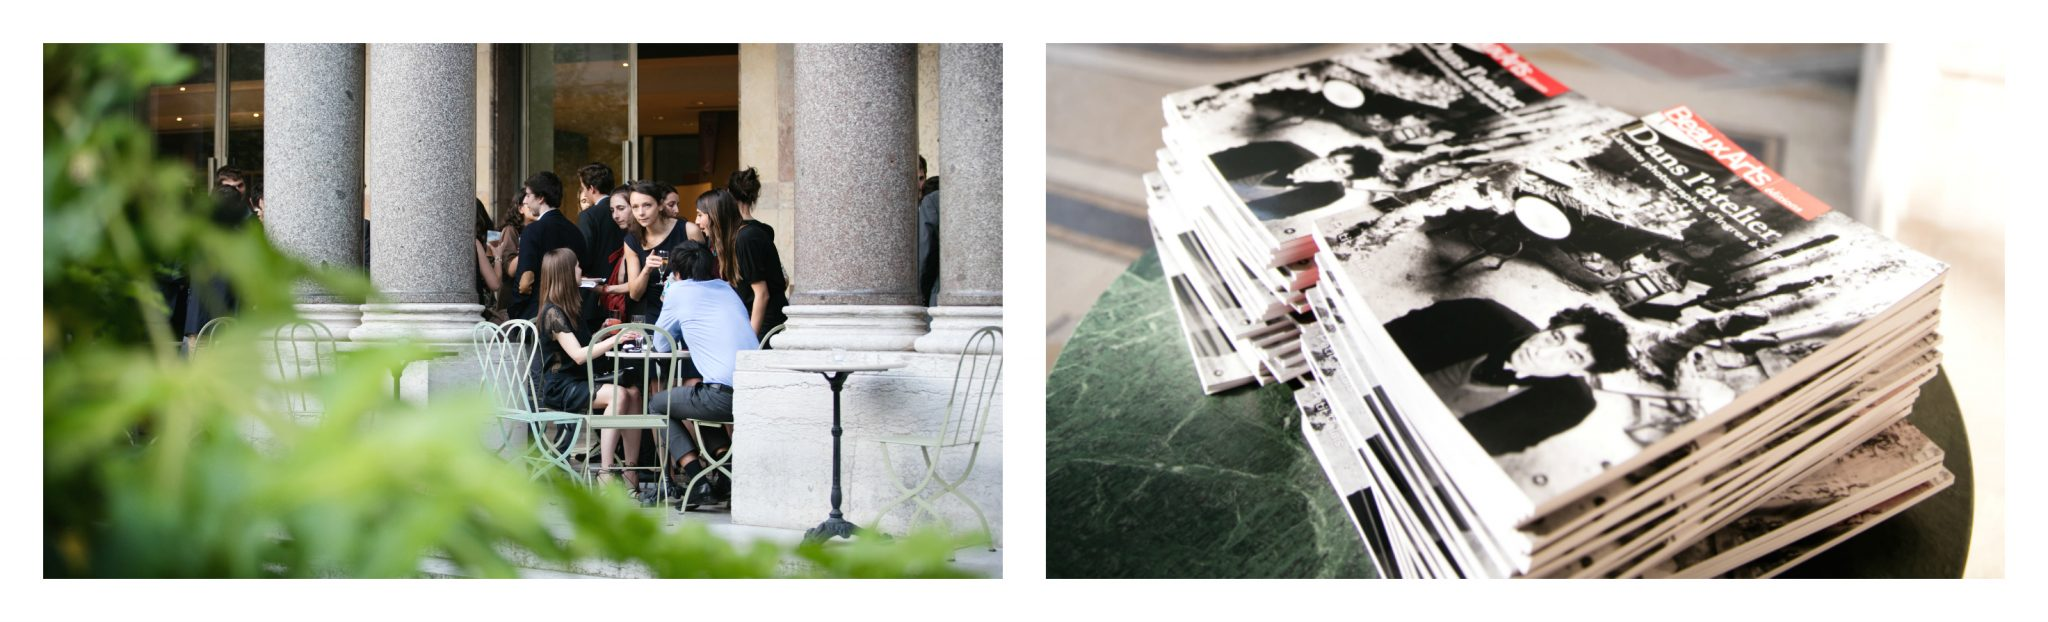 petit palais collage 3 UpSlide & Finance 3.1 at Petit Palais